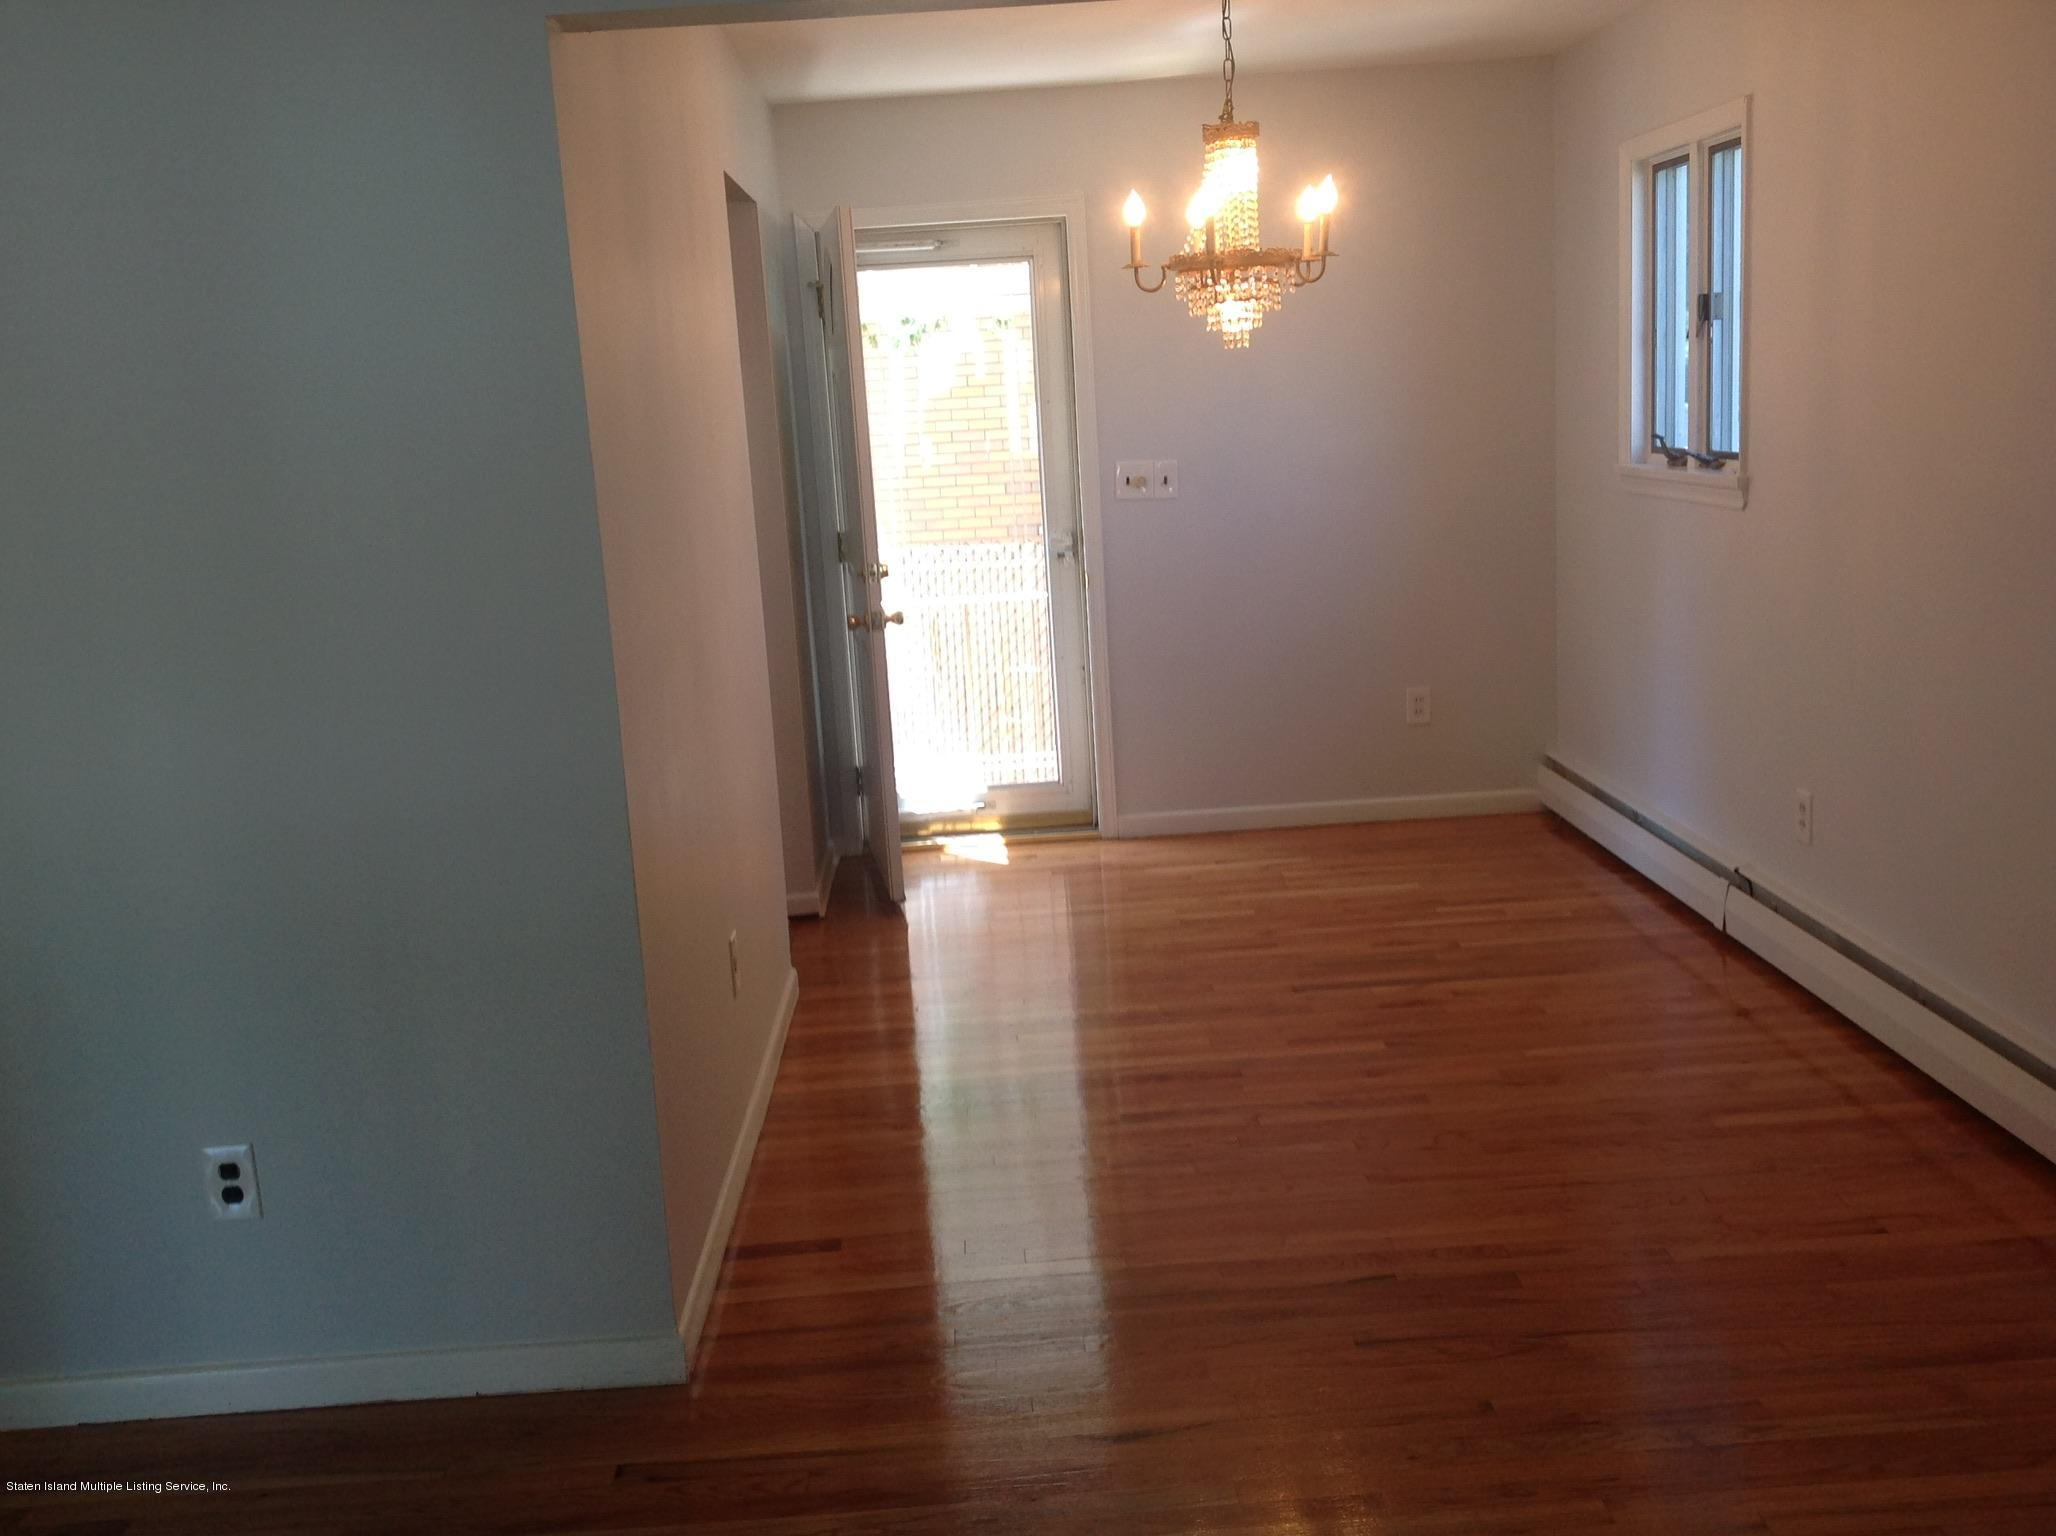 Single Family - Detached 28 Queen Street  Staten Island, NY 10314, MLS-1148779-11